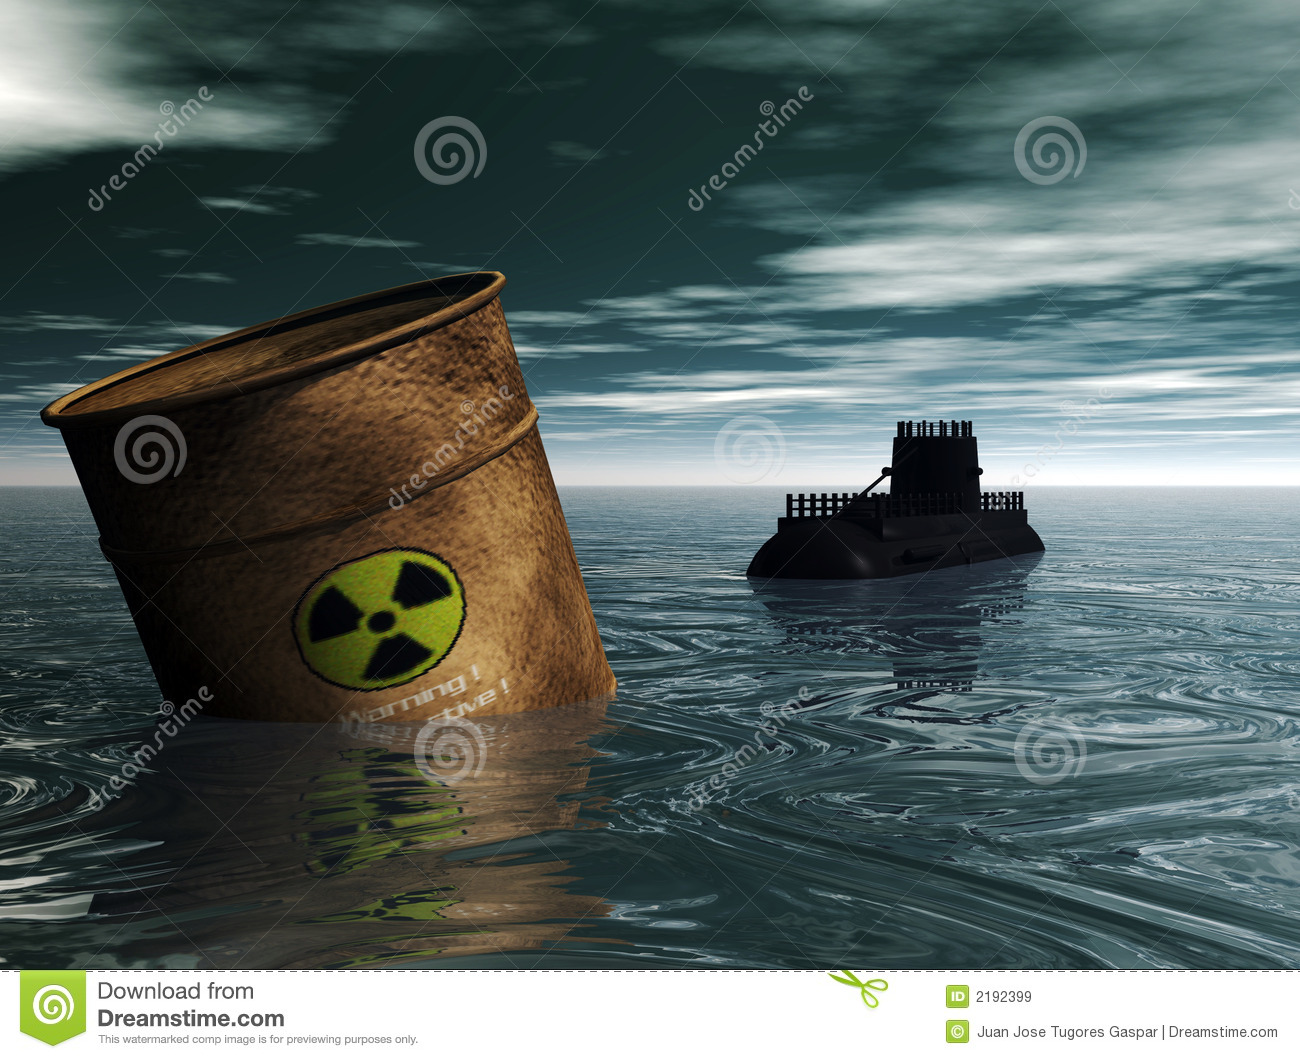 Contamination In The Sea Royalty Free Stock Images - Image: 2192399